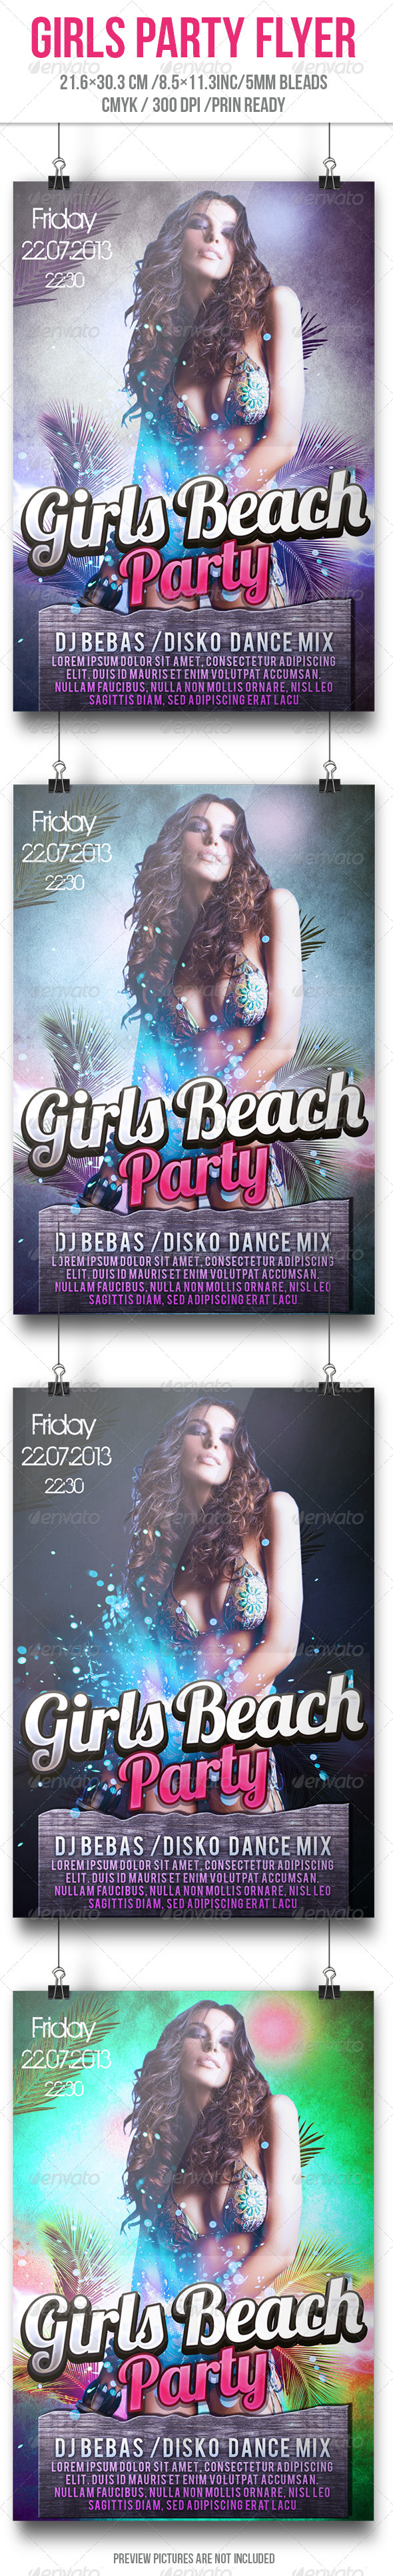 Girls Beach Party Flyer - Flyers Print Templates